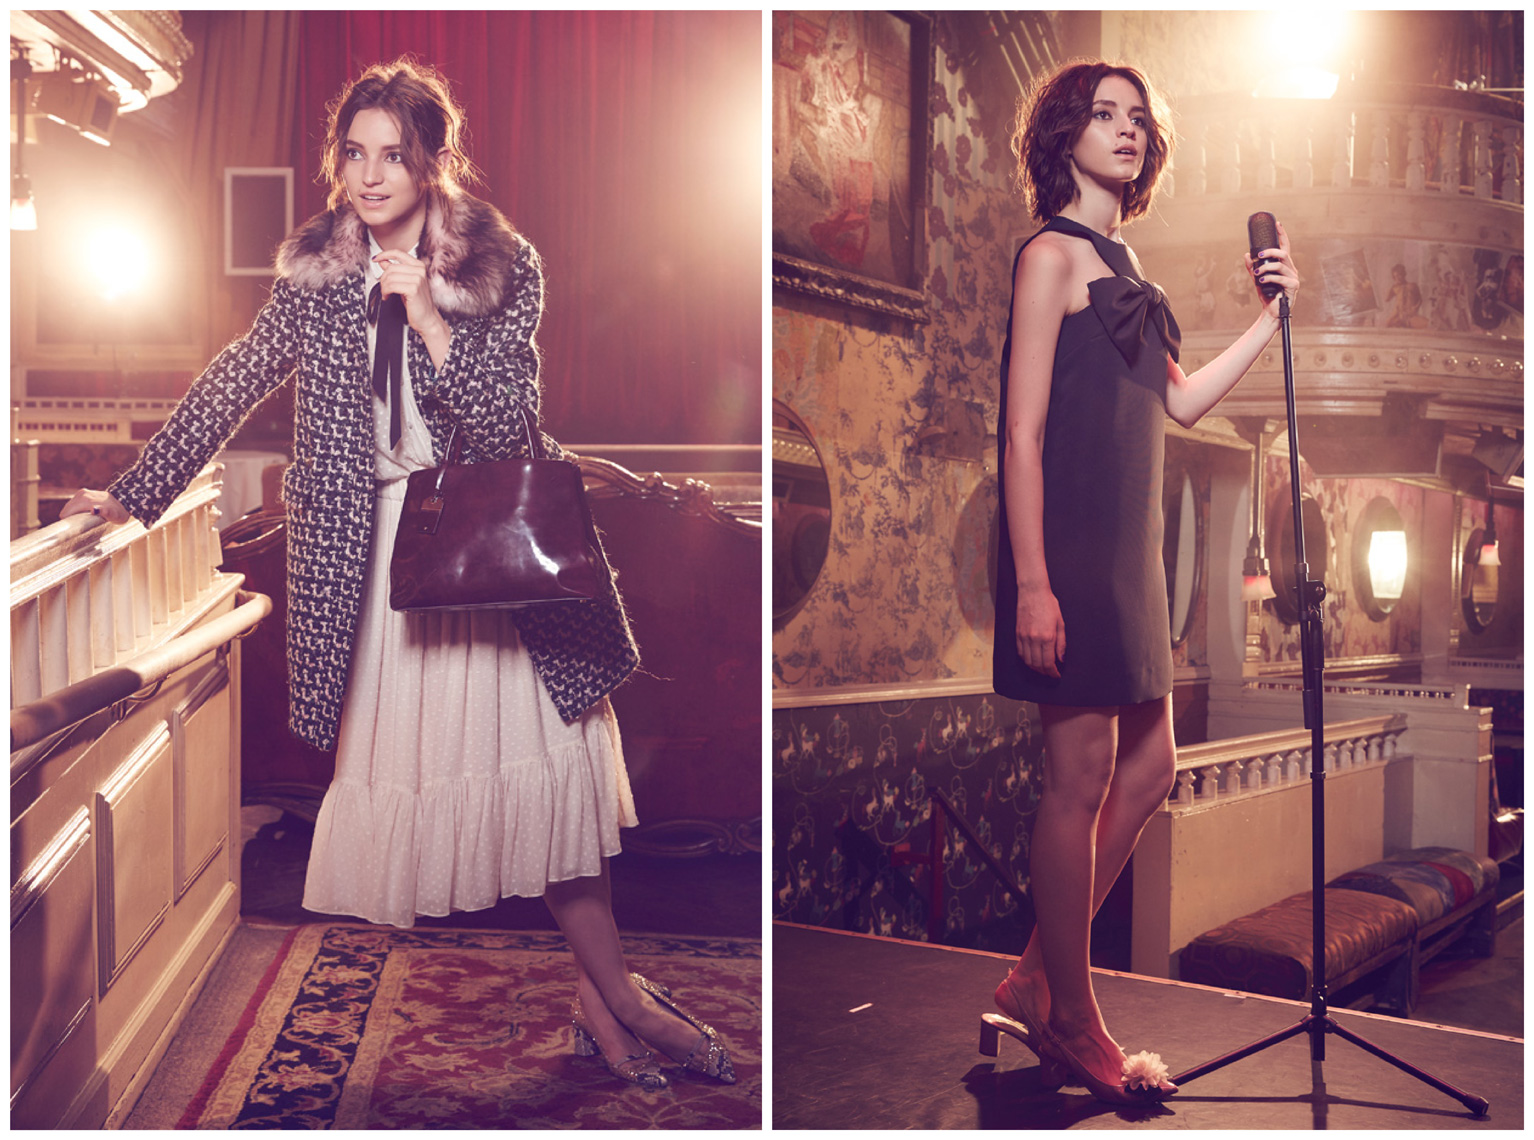 Fashion_May_17_Diptych17